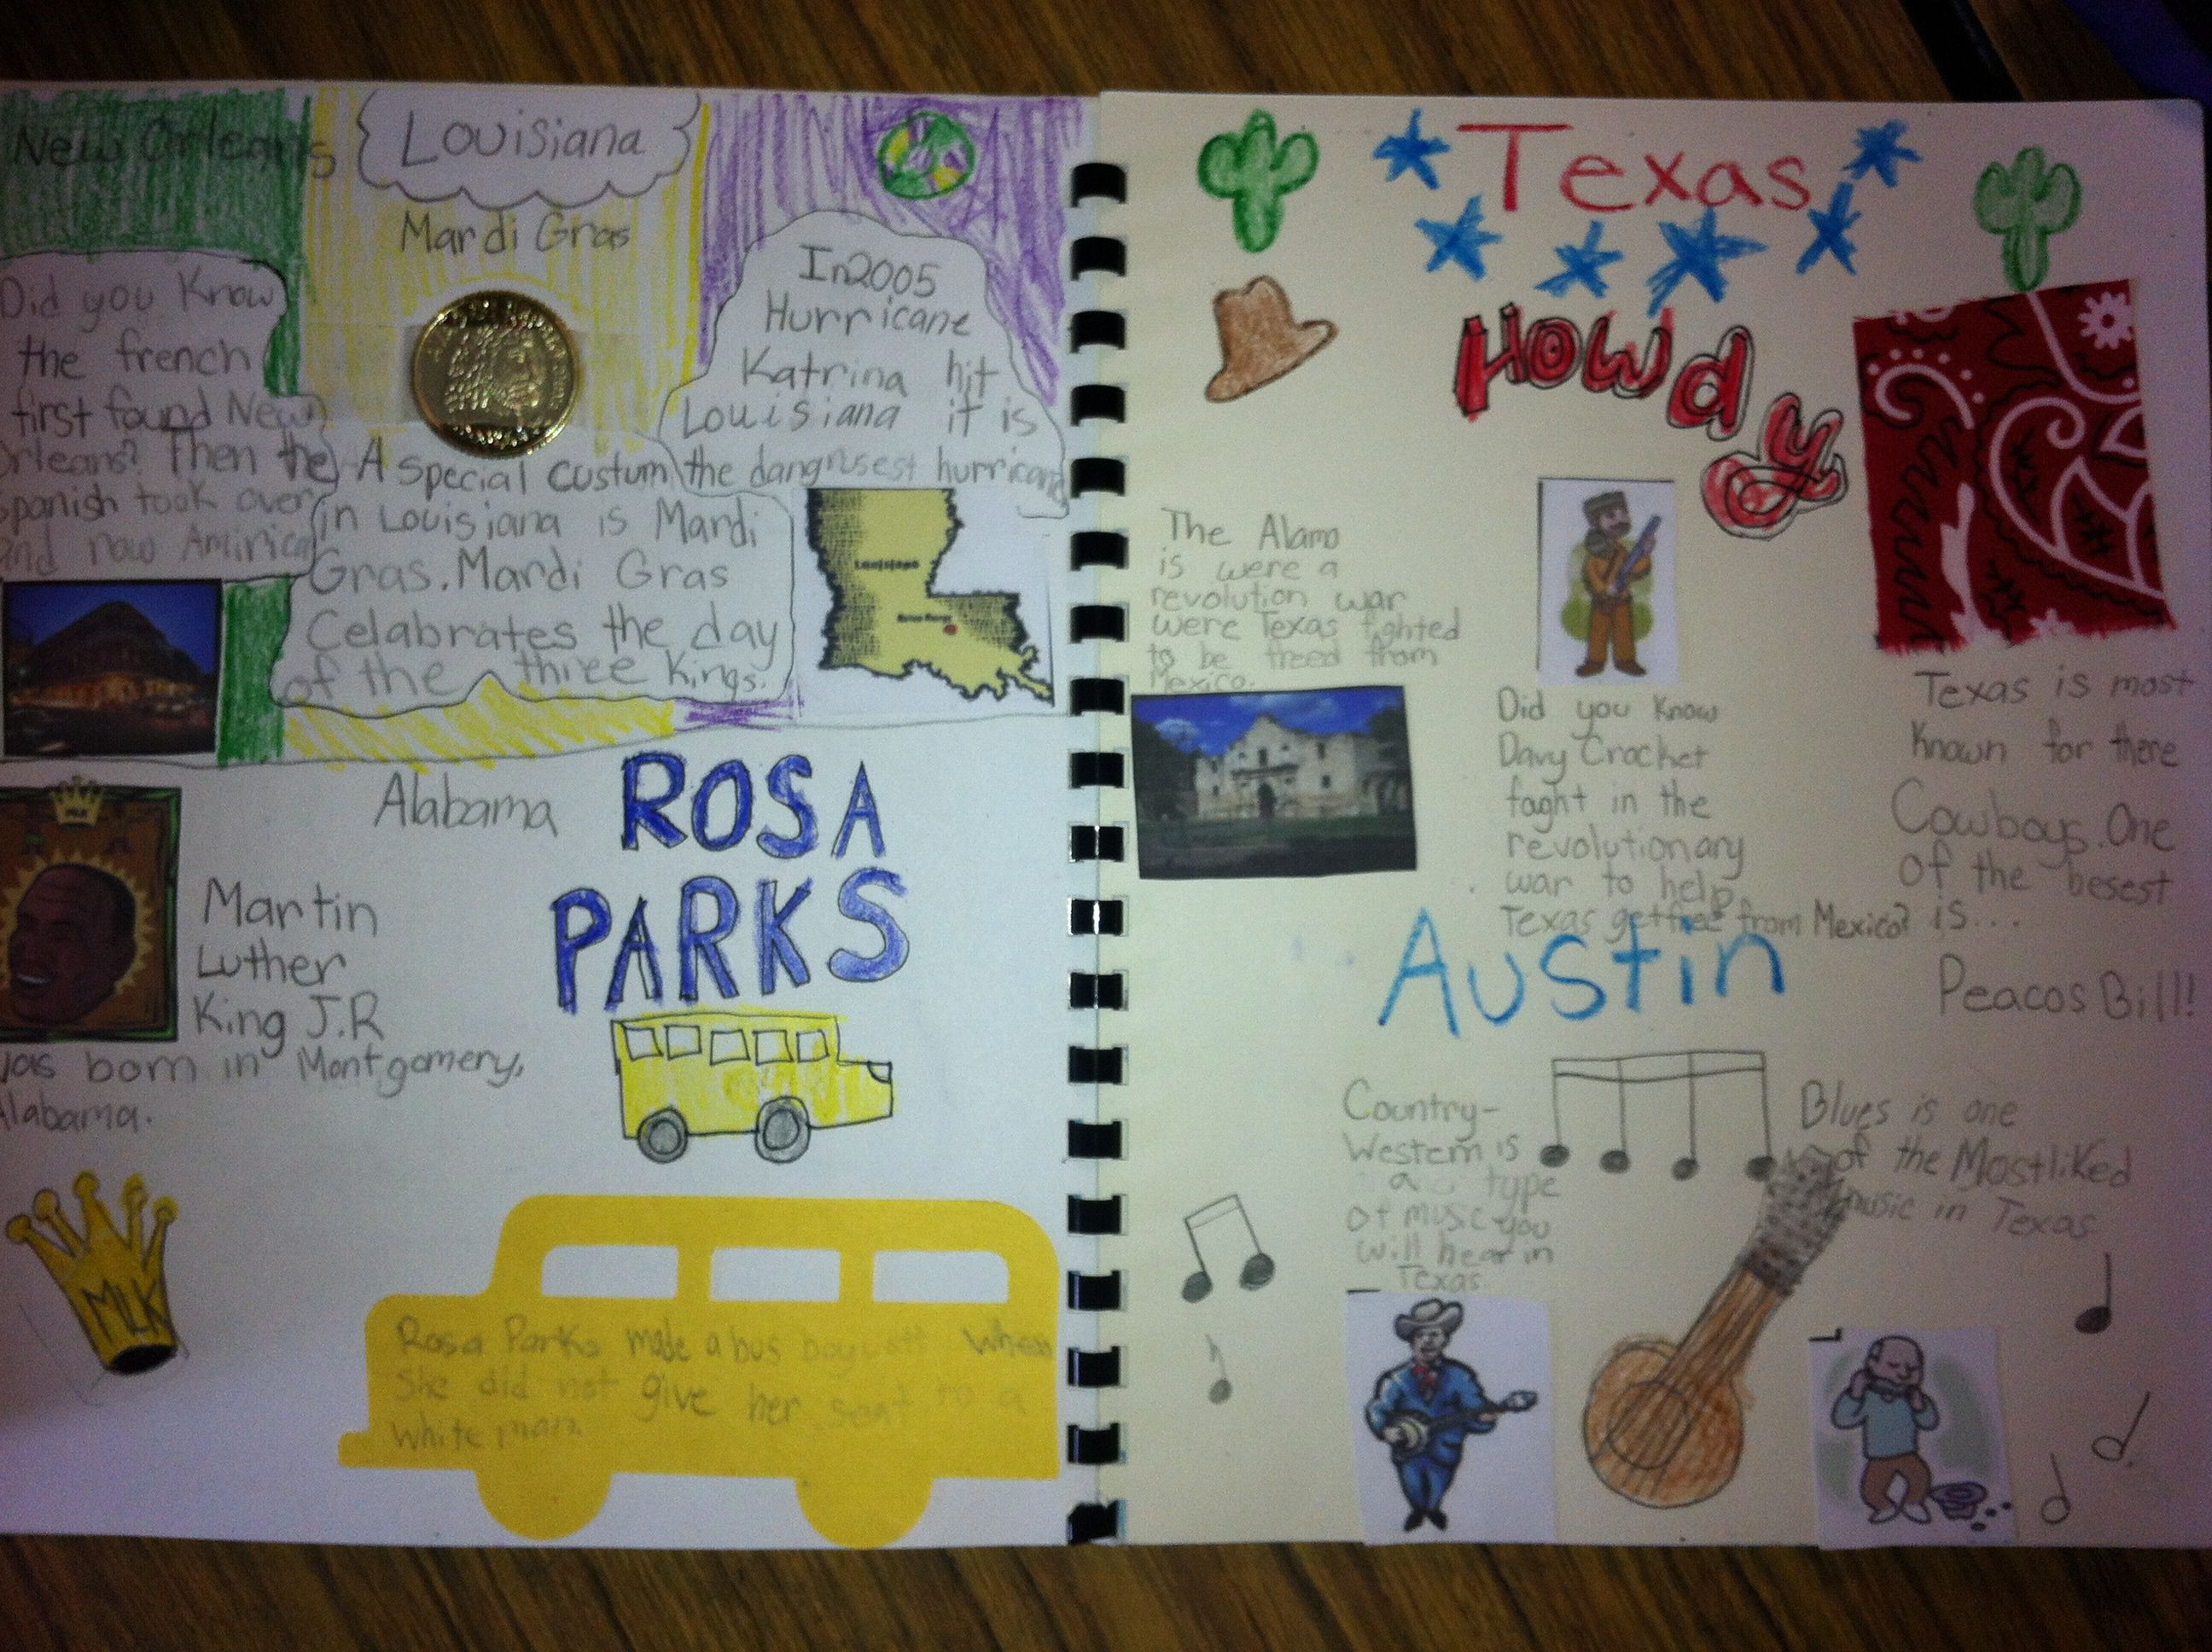 Scrapbook ideas history projects - Scrapbooks Created During U S Regions Study Image Only Can Do A Texas Regions Scrapbook